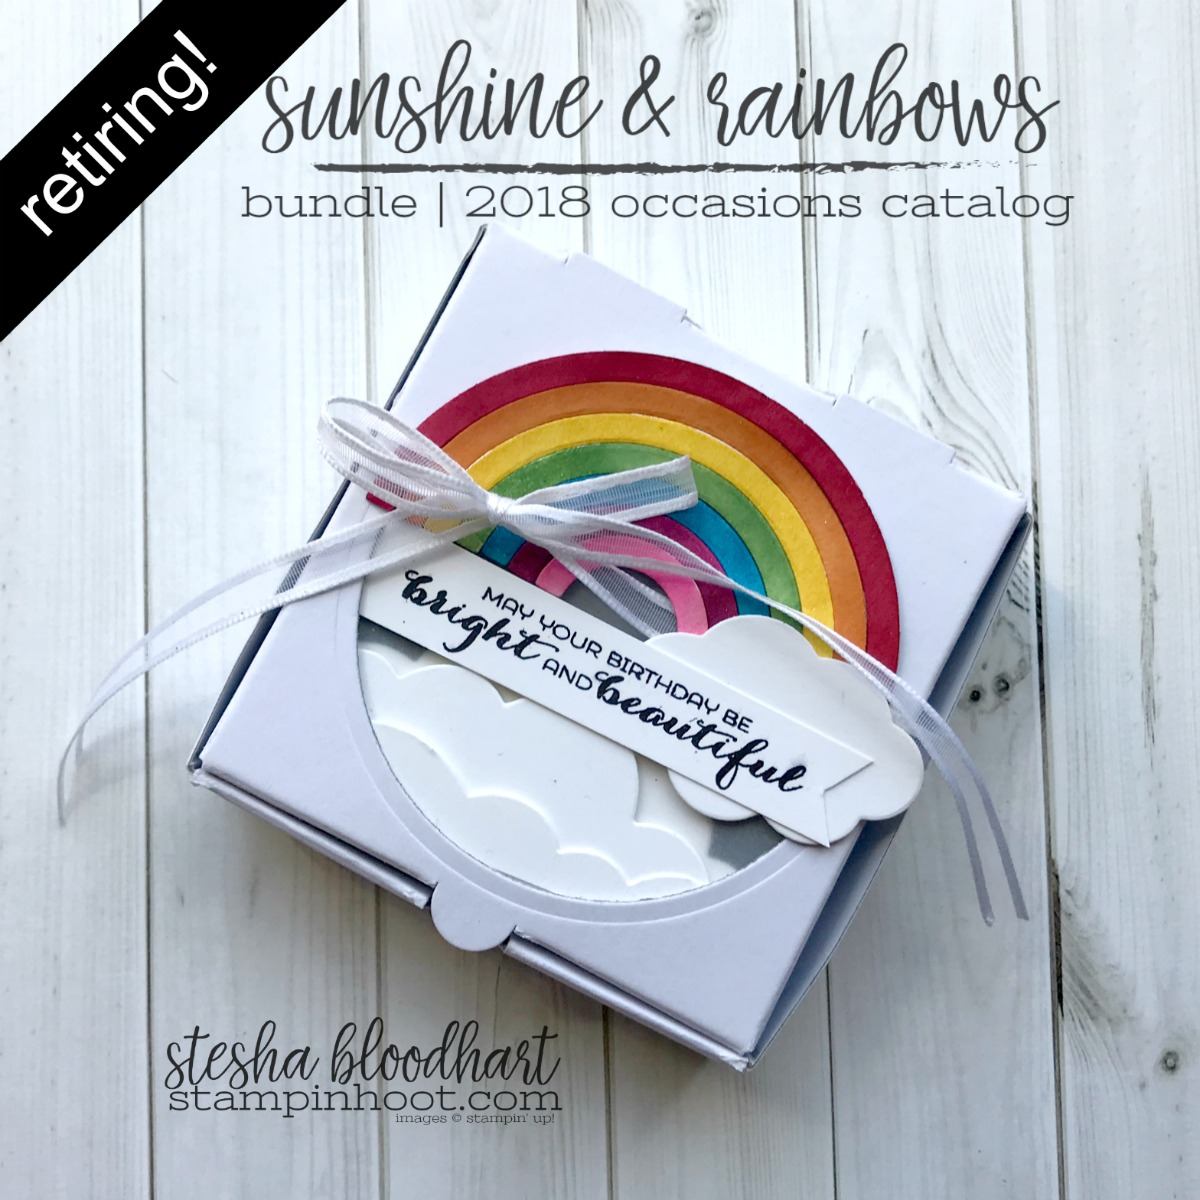 Sunshine & Rainbows Bundle by Stampin' Up! from the 2018 Occasions Catalog. Retiring May 31st, 2018. Pizza Box Created by Stesha Bloodhart, Stampin' Hoot! #steshabloodhart #stampinhoot